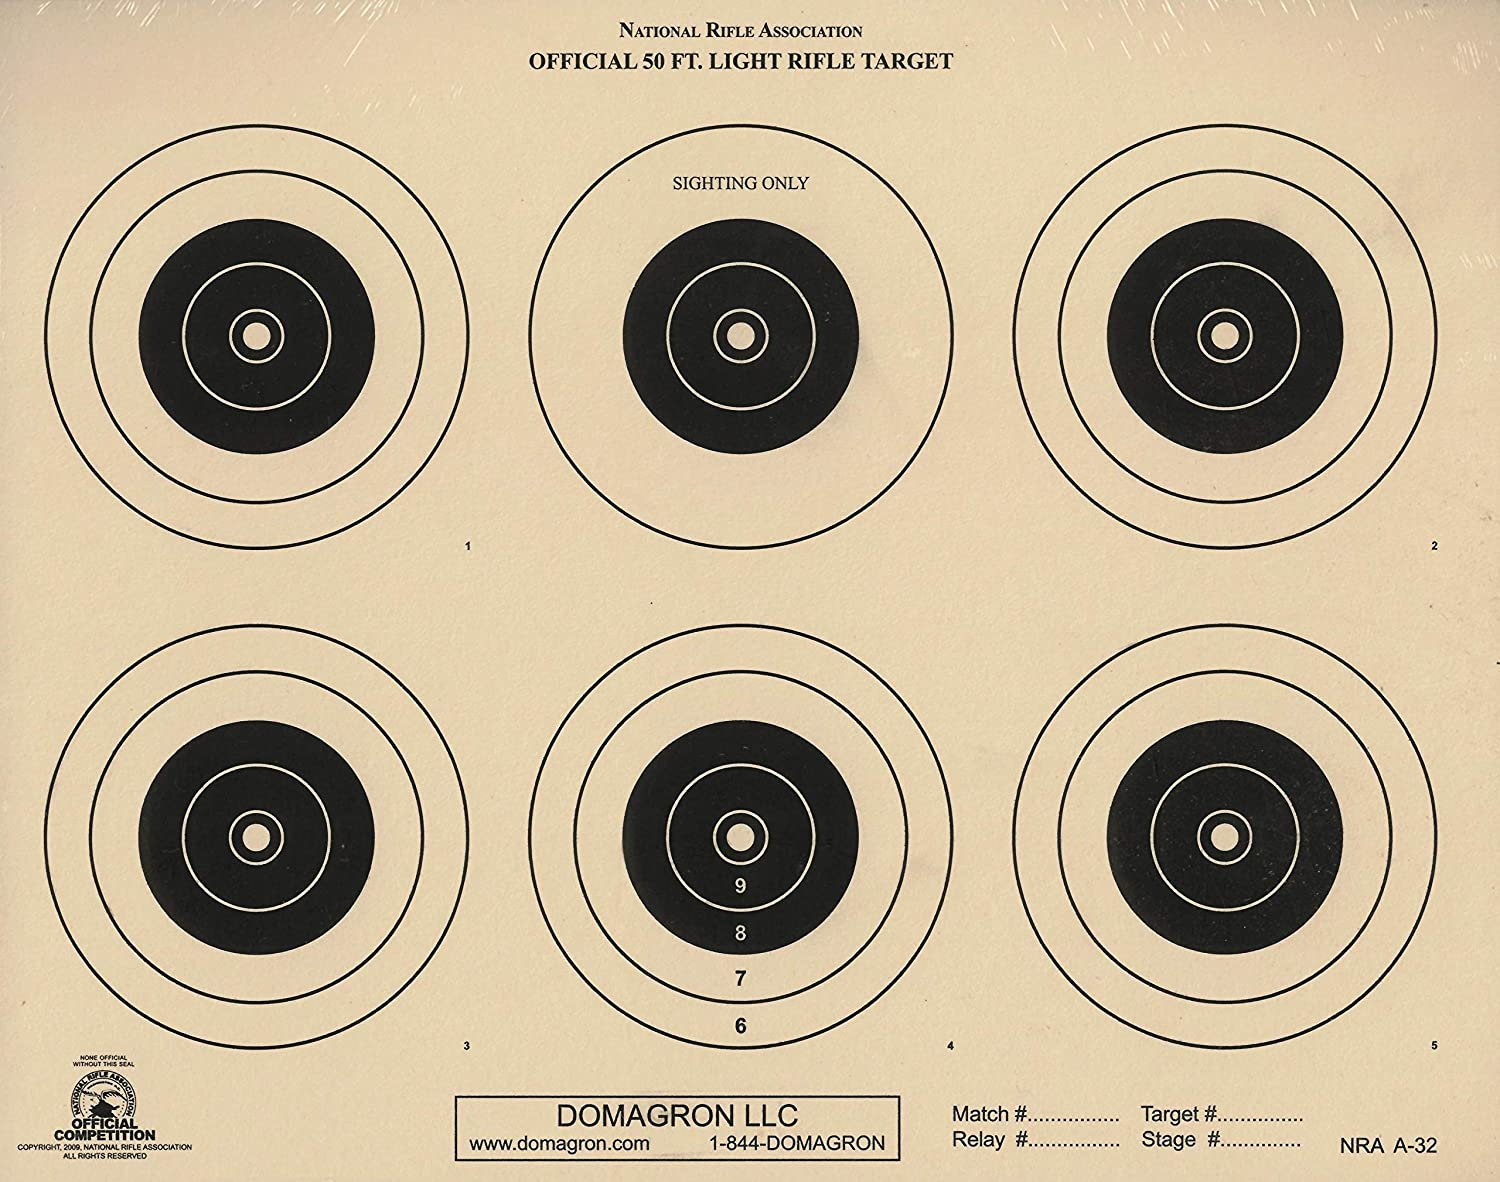 6 bulls, 500 A32 Tagboard A-32 NRA Official 50 Foot Light Rifle Target